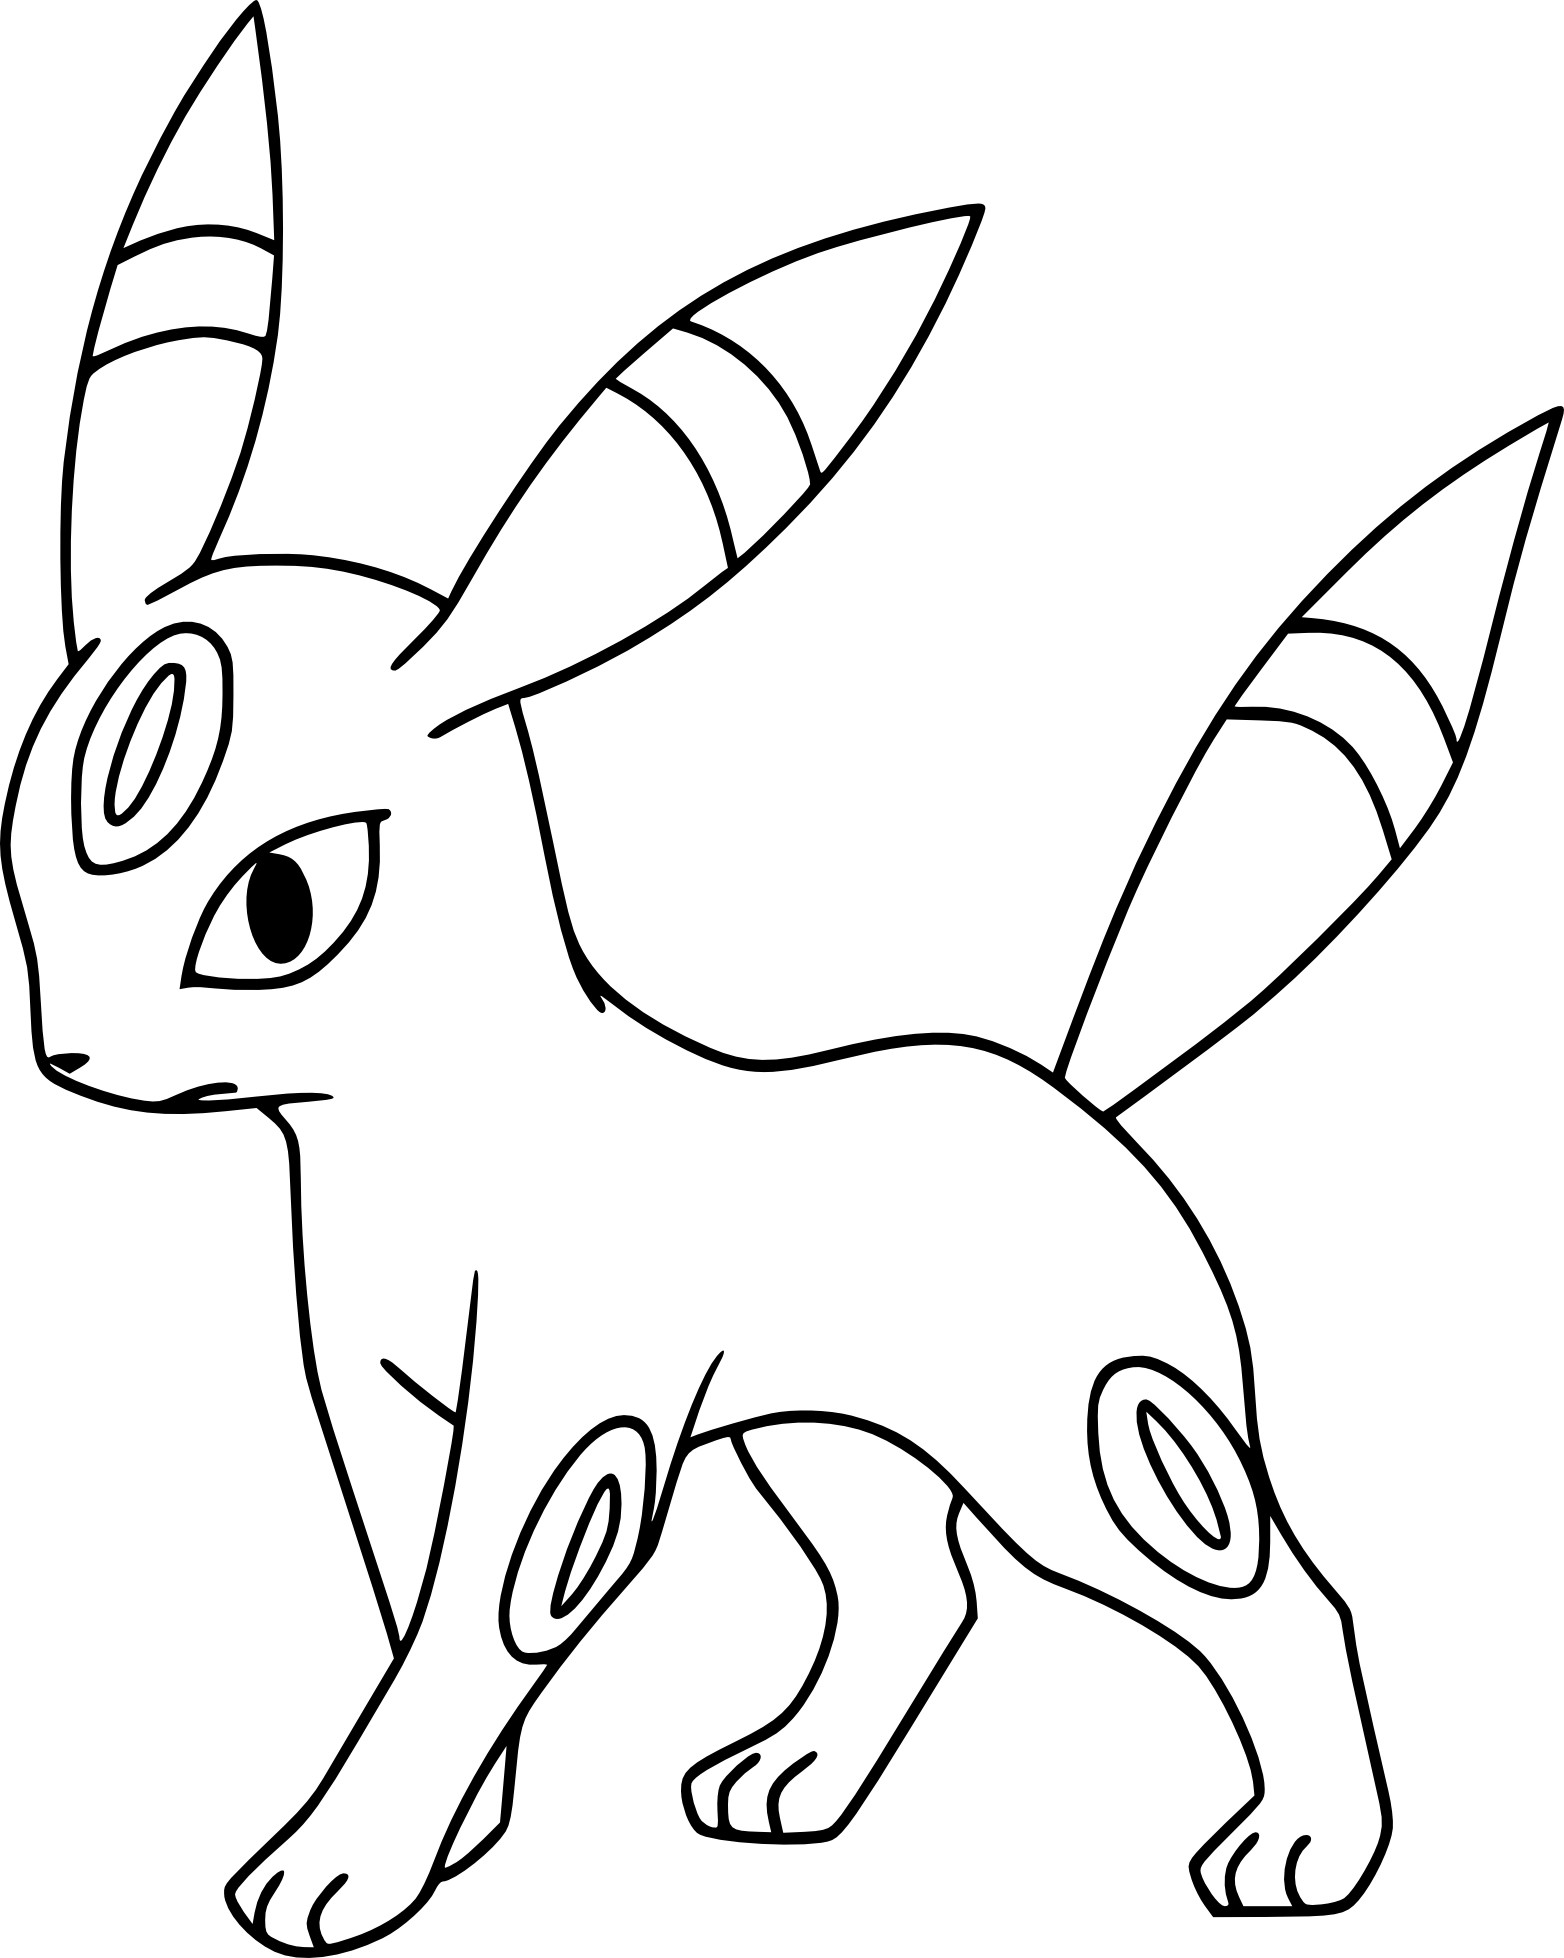 Coloriage noctali pokemon imprimer - Dessins pokemon ...